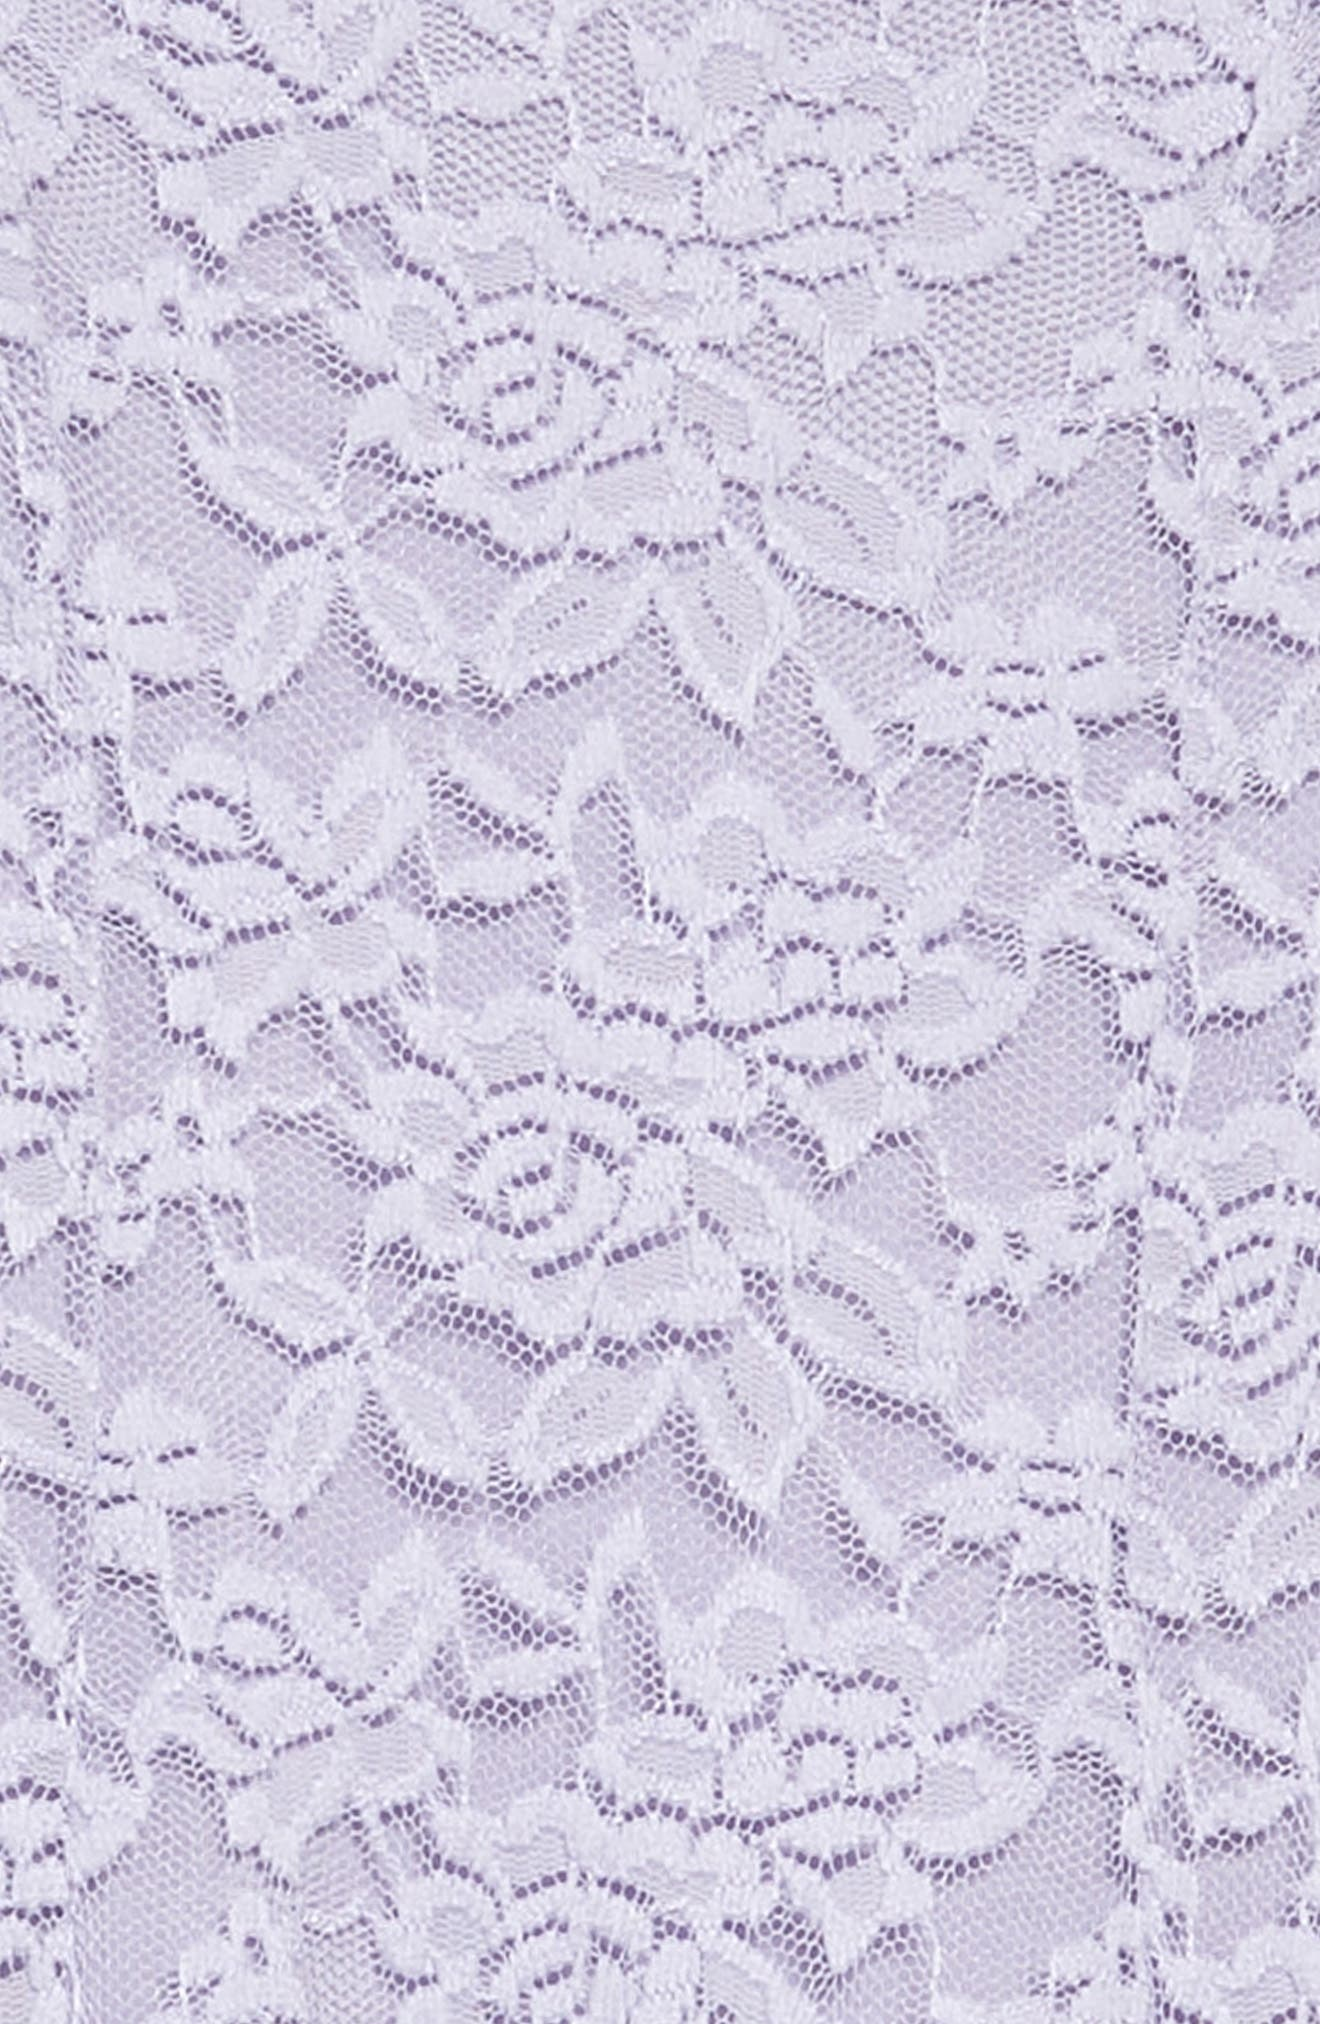 Floral Lace Sleeveless Dress,                             Alternate thumbnail 2, color,                             Lilac